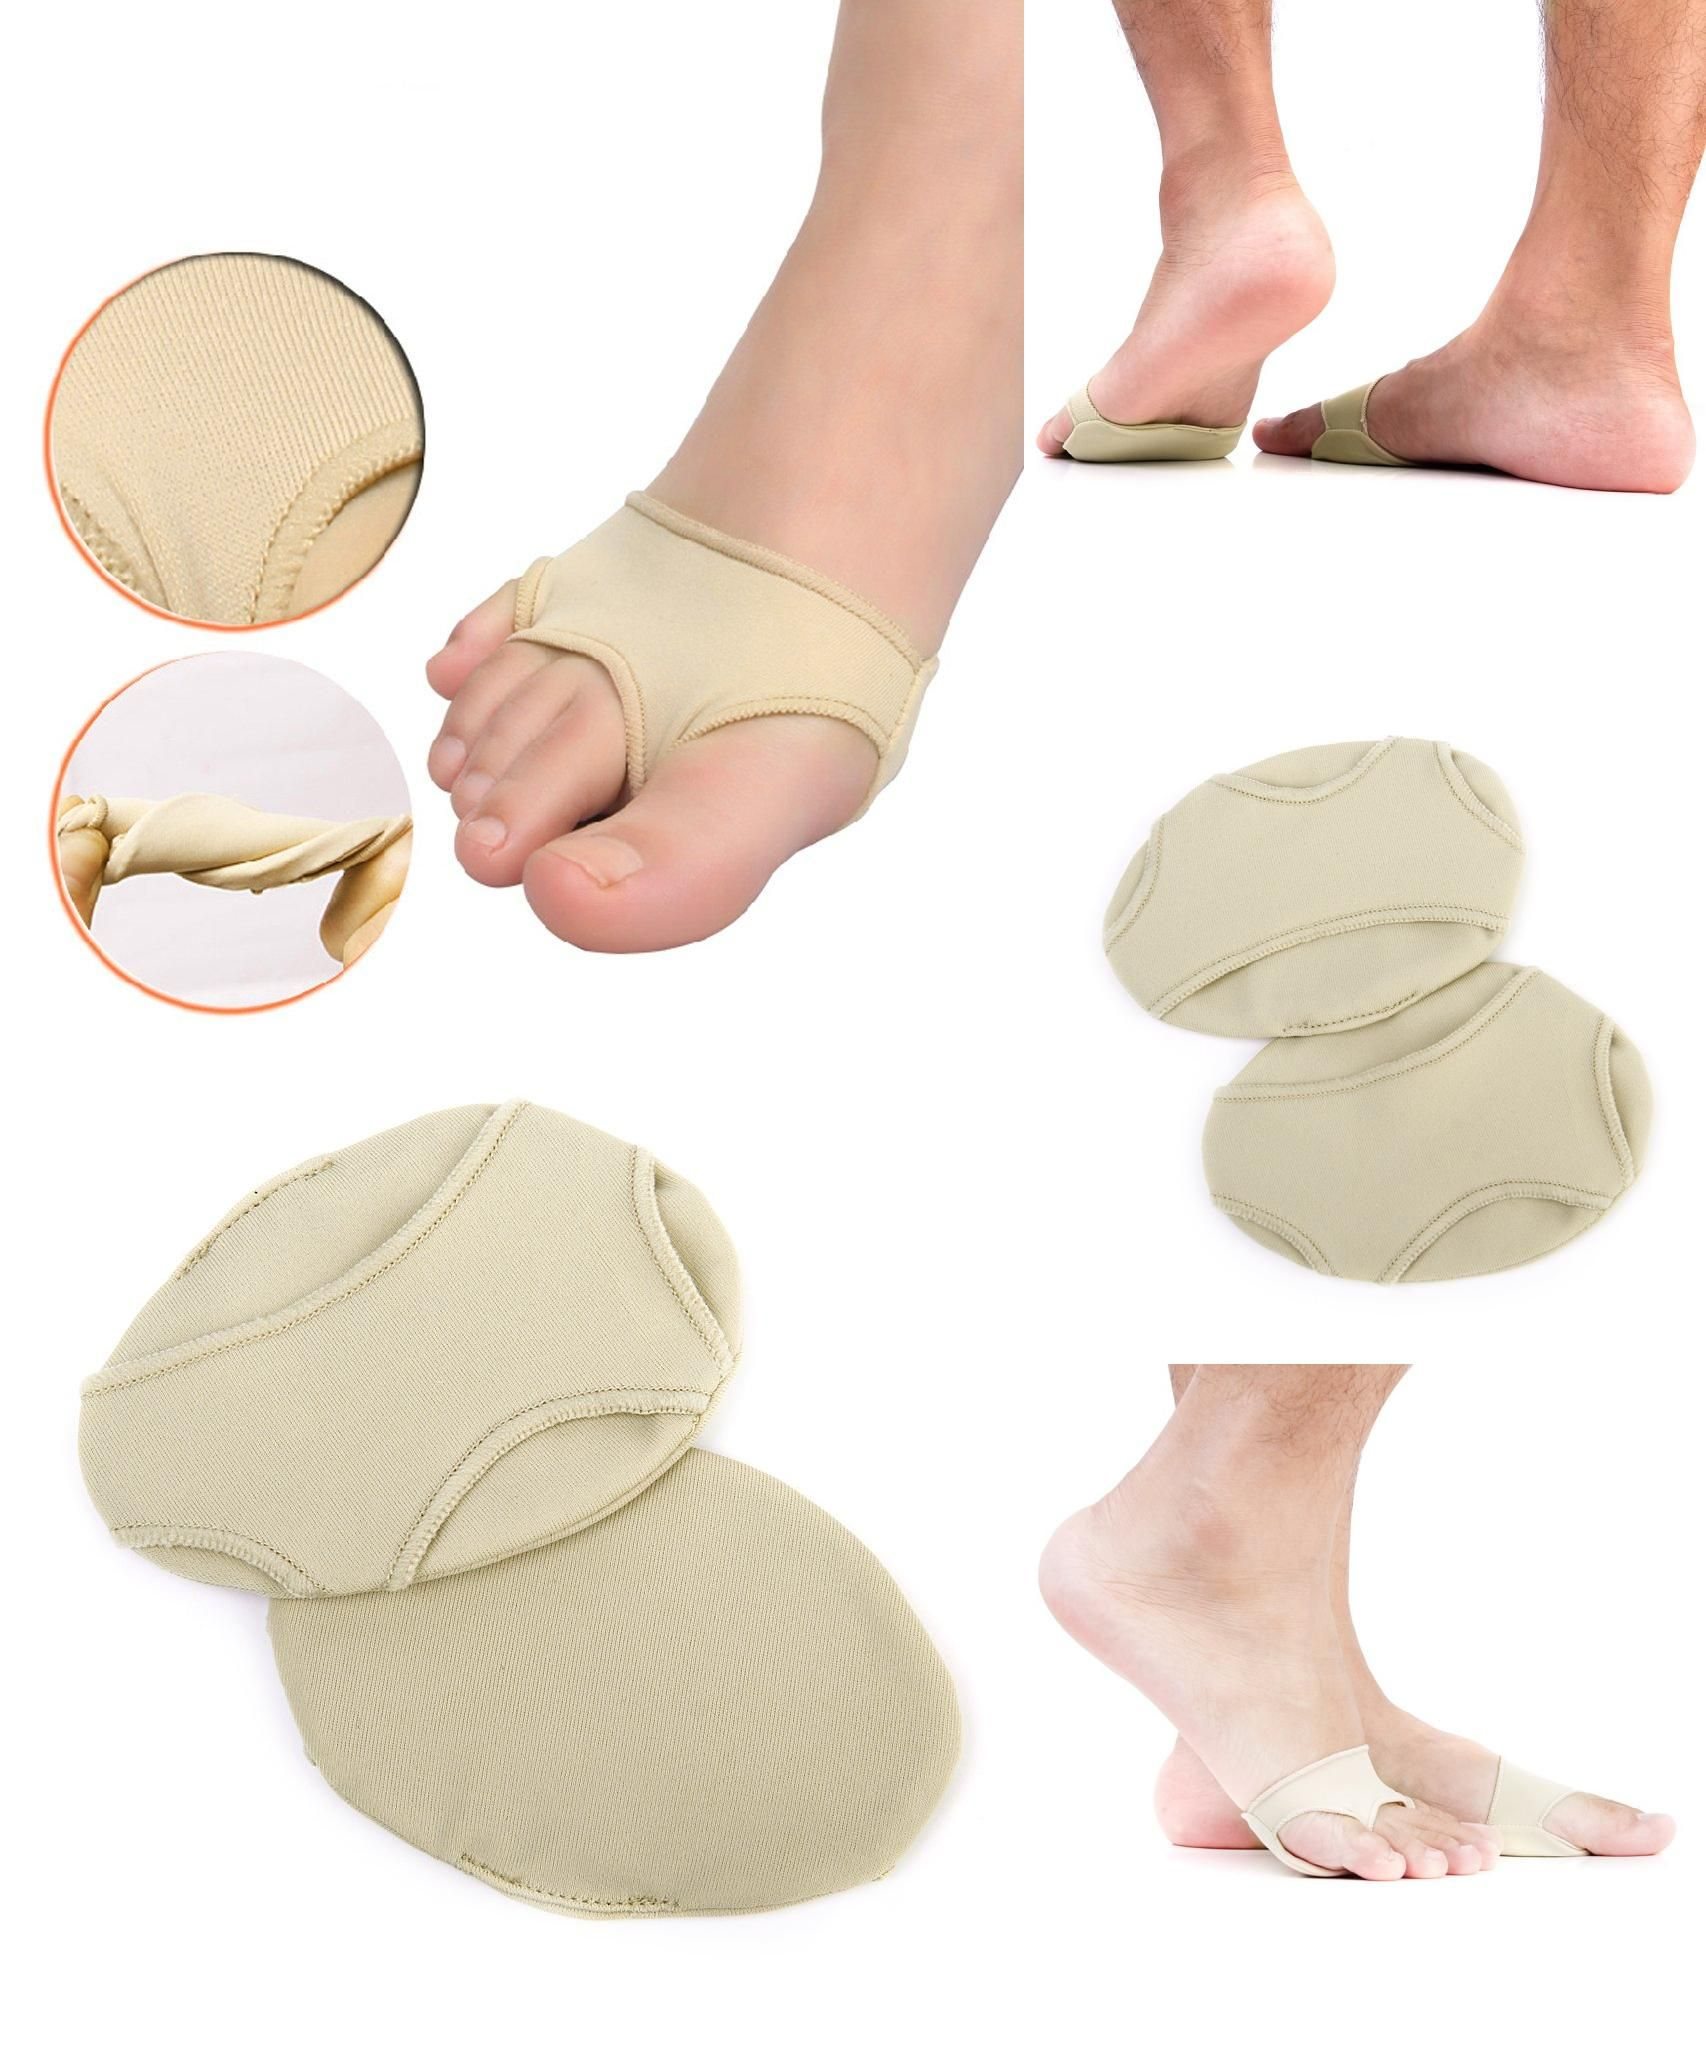 Visit to Buy pcs Foot Gel Forefoot Metatarsal Pain Relief Absorber